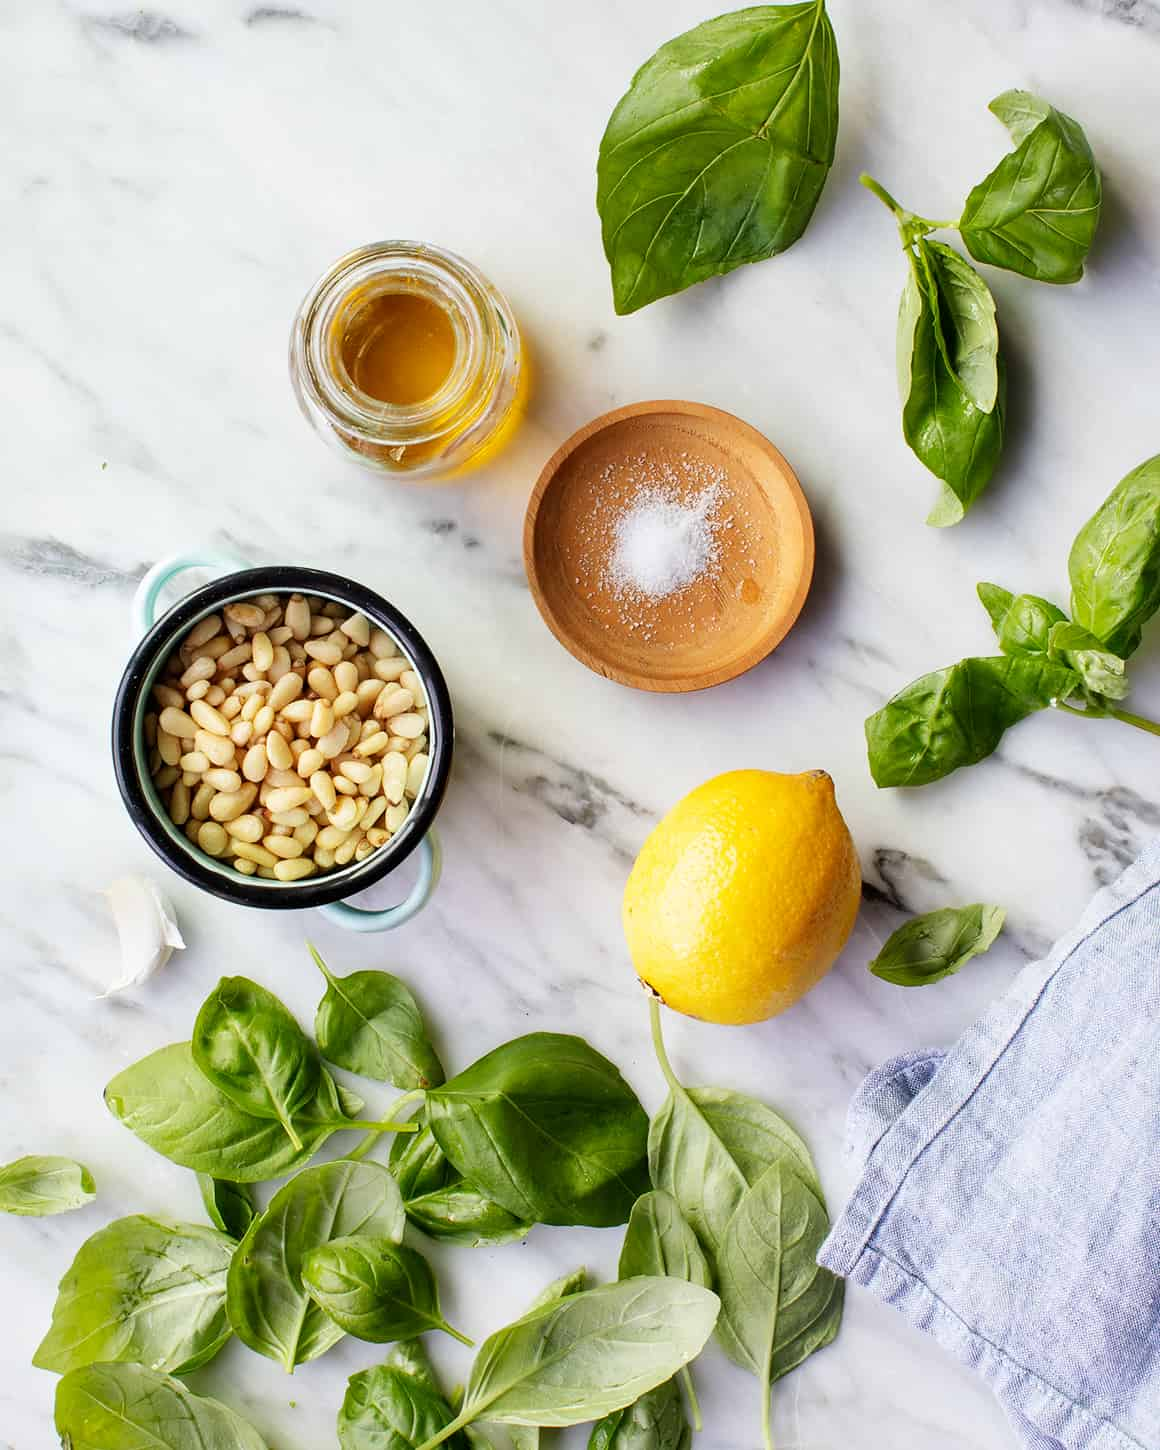 Pesto Recipe ingredients